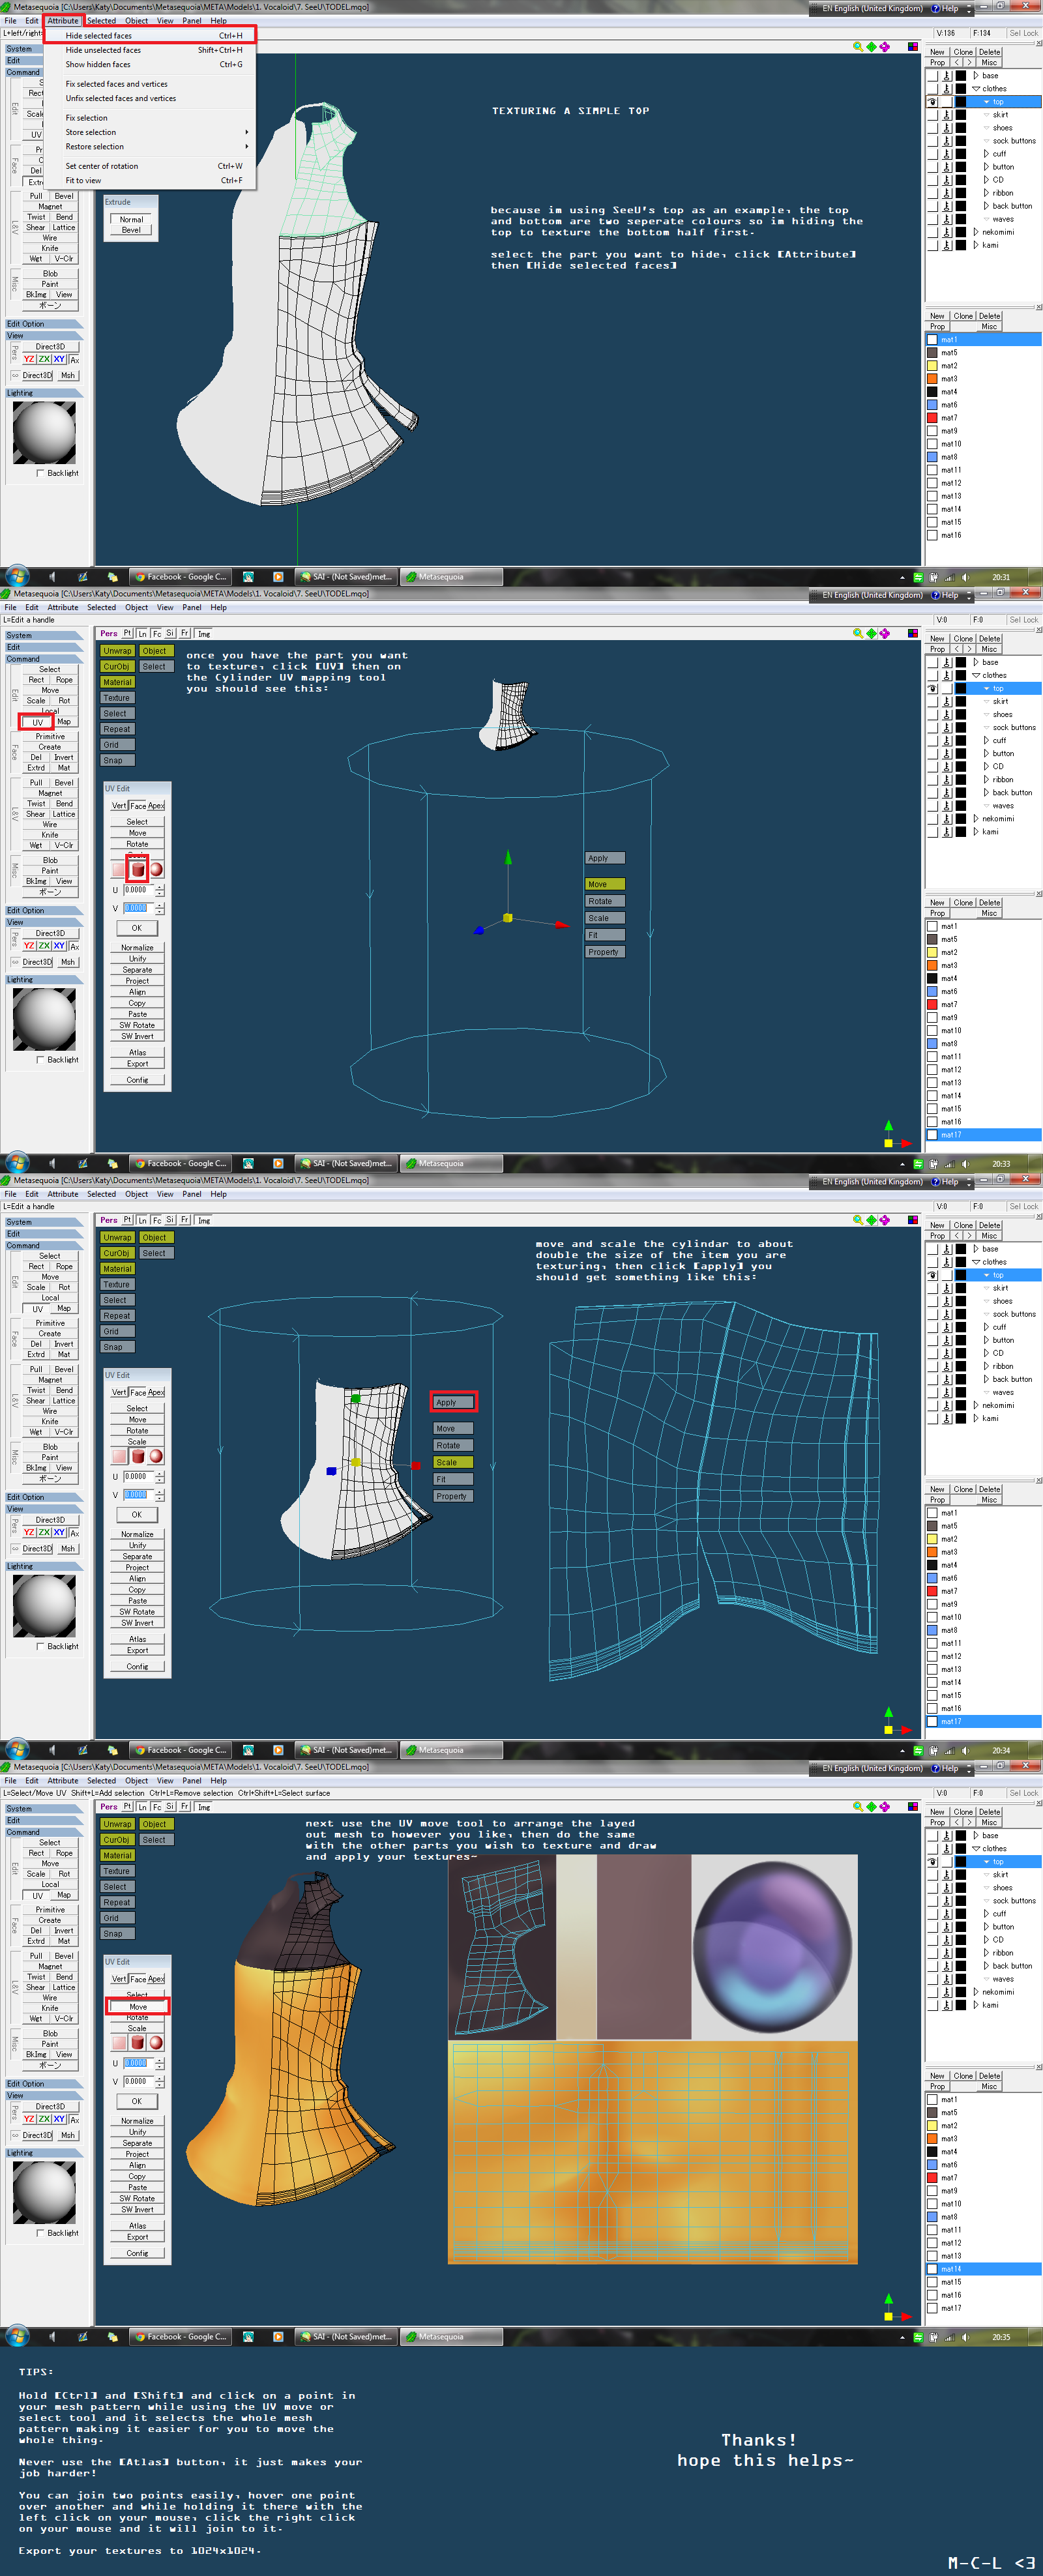 BASIC TEXTURING TUTORIAL by MMD-MCL